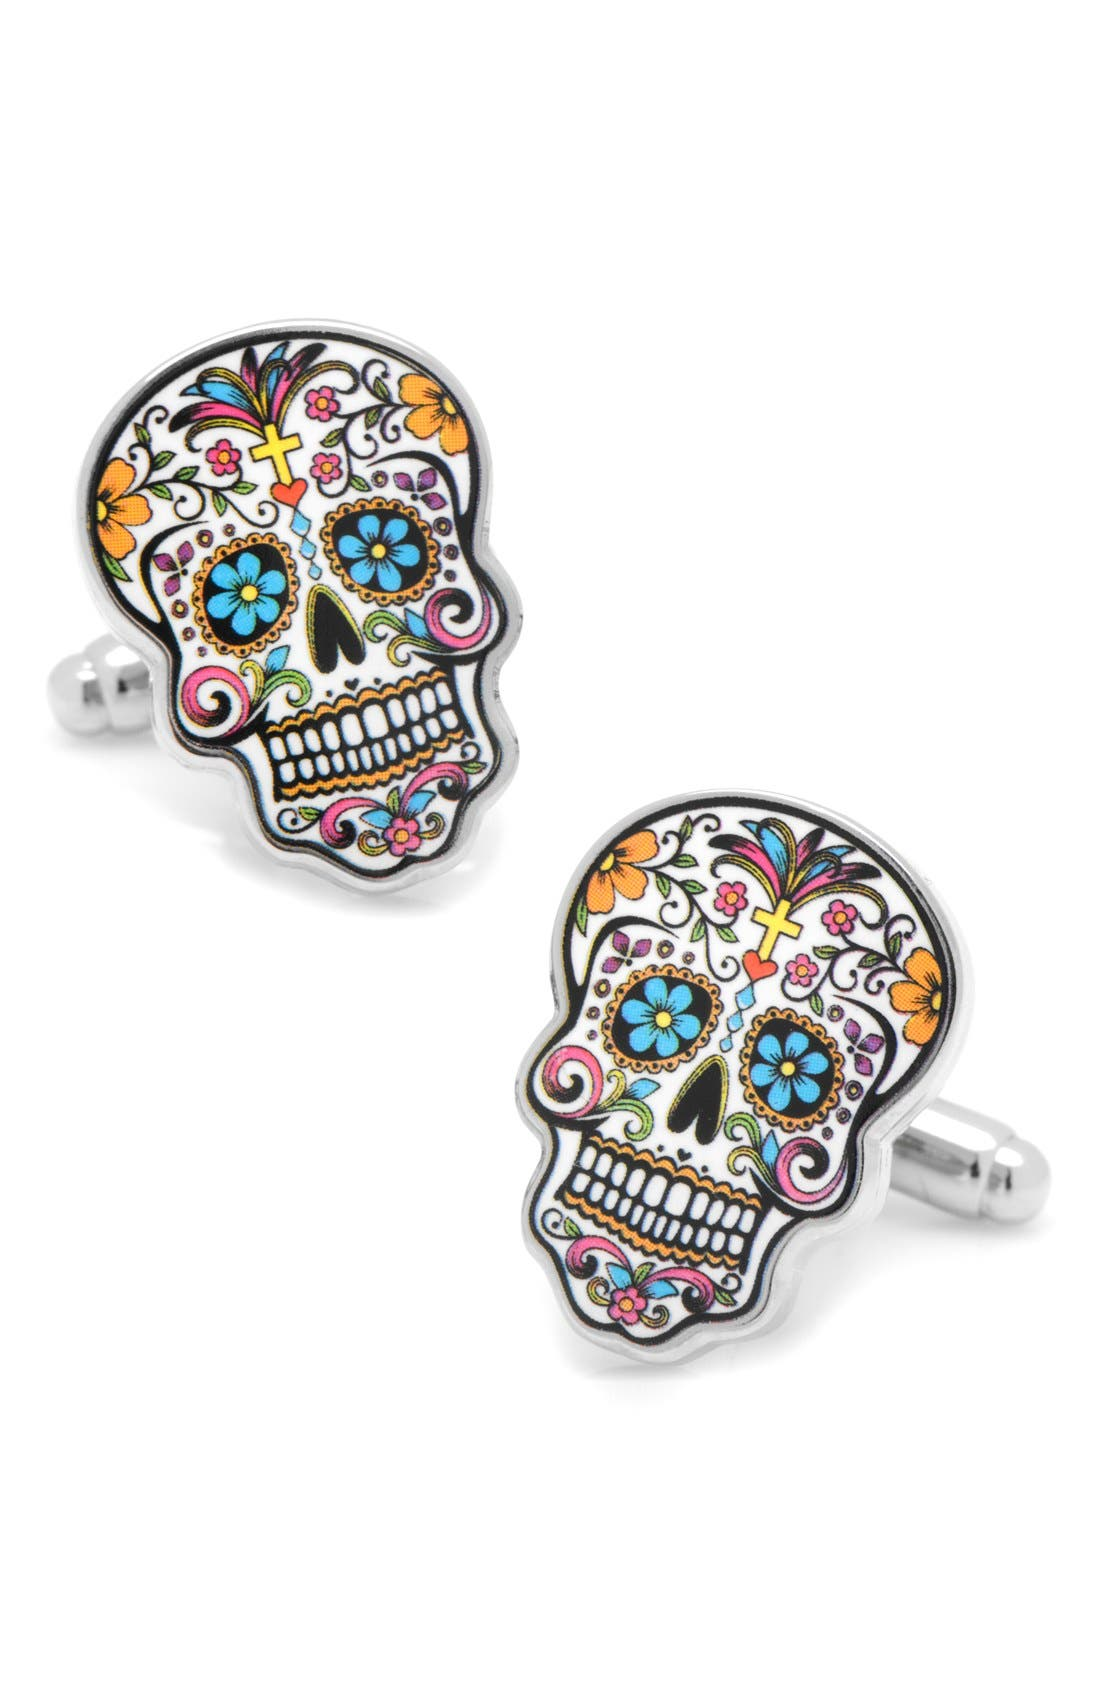 Cufflinks, Inc. 'Day of the Dead' Cuff Links